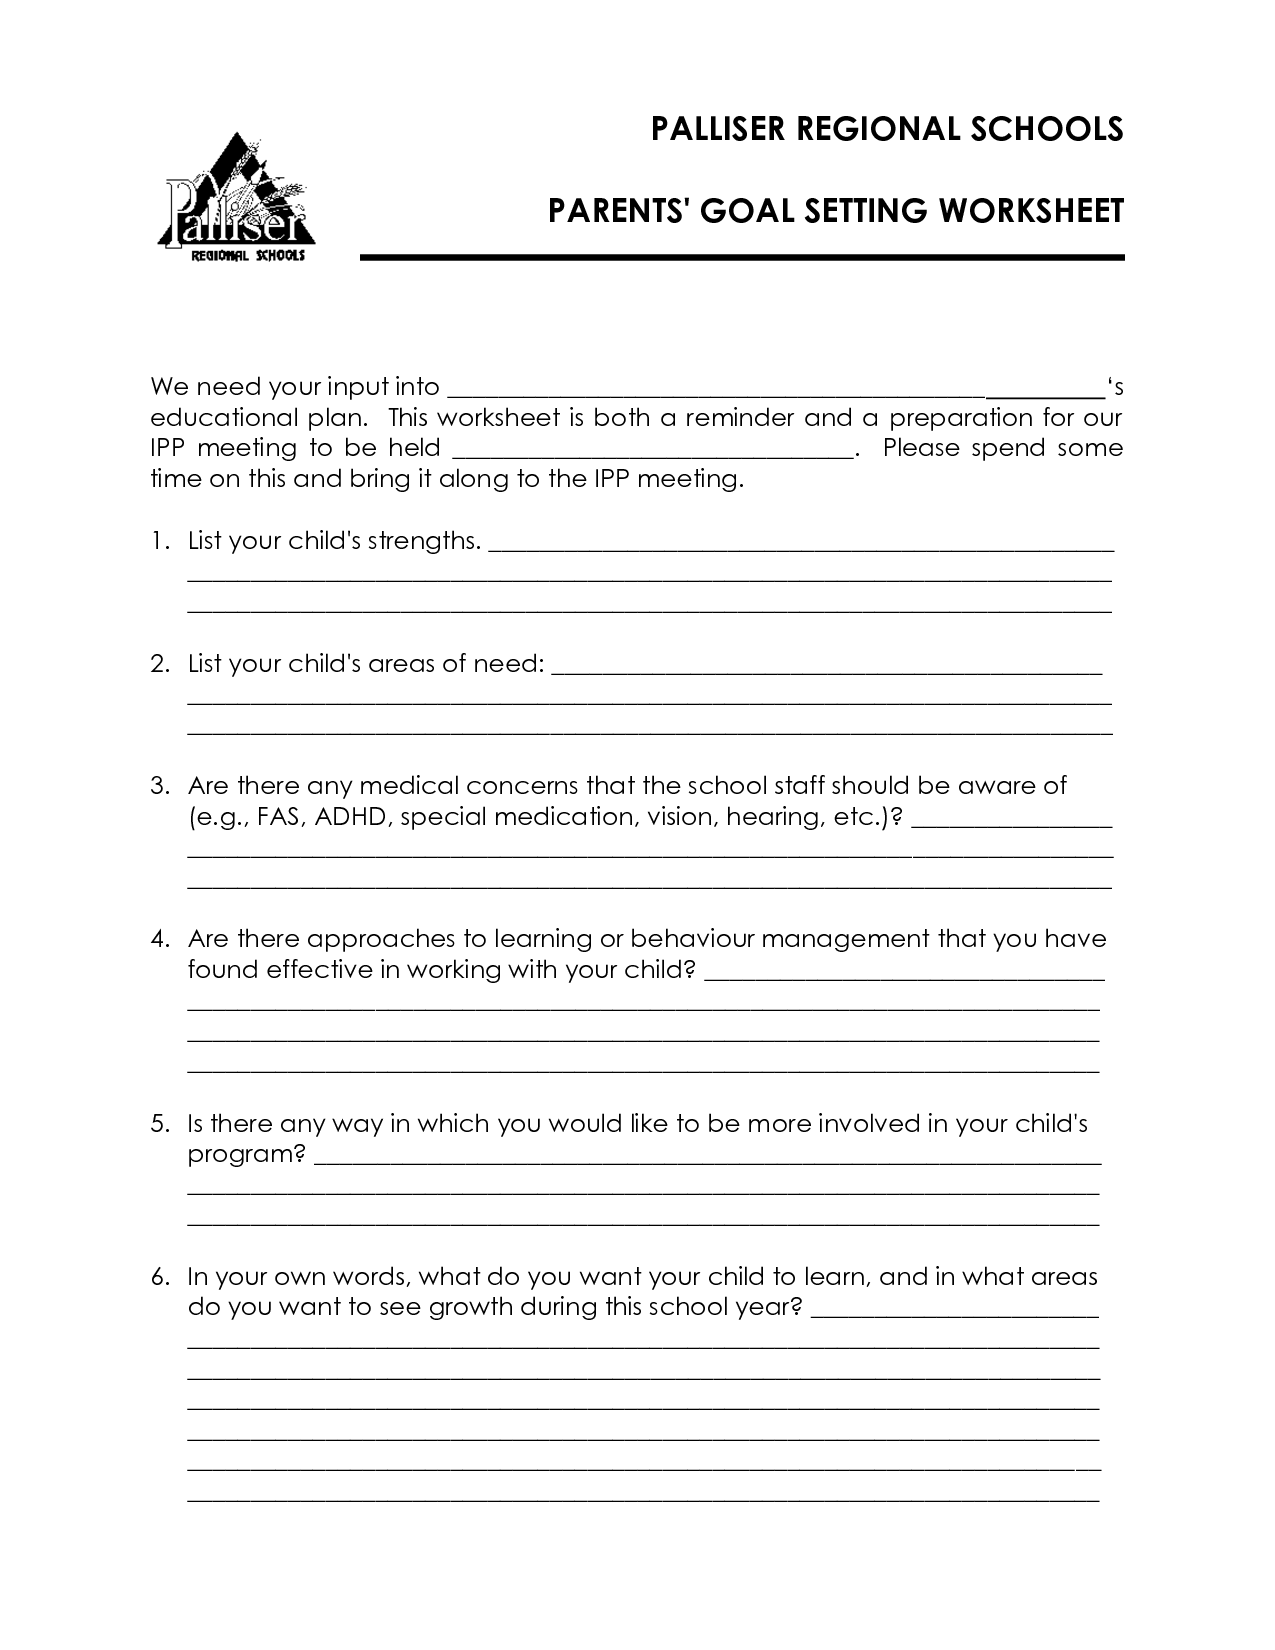 15 Best Images Of Medication Management Worksheet